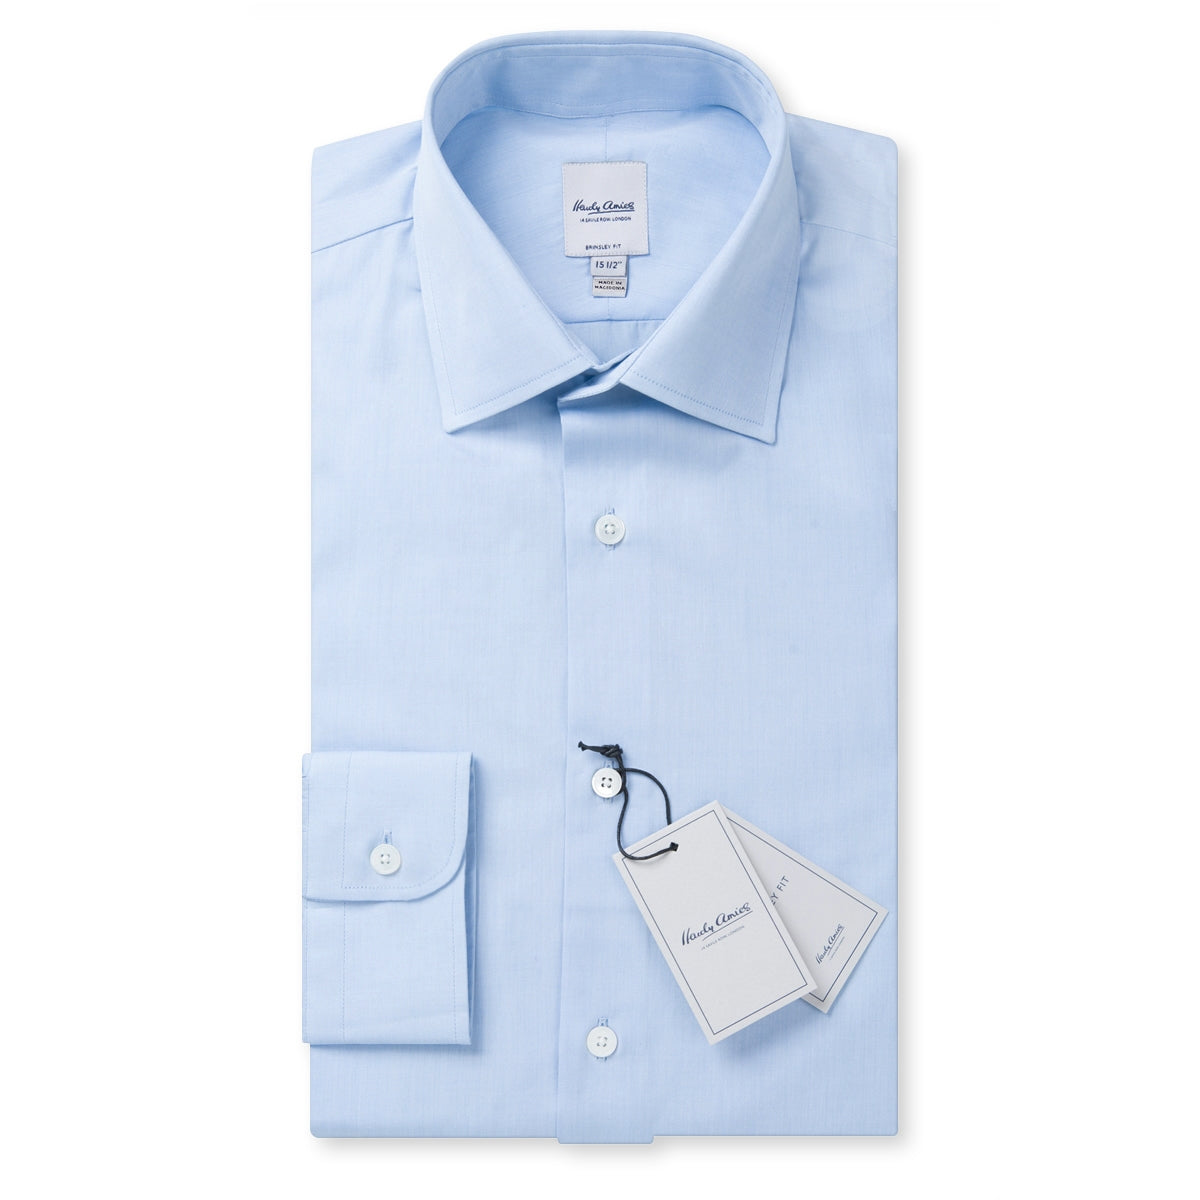 Hardy Amies Solid Sky Blue Spread Collar Shirt